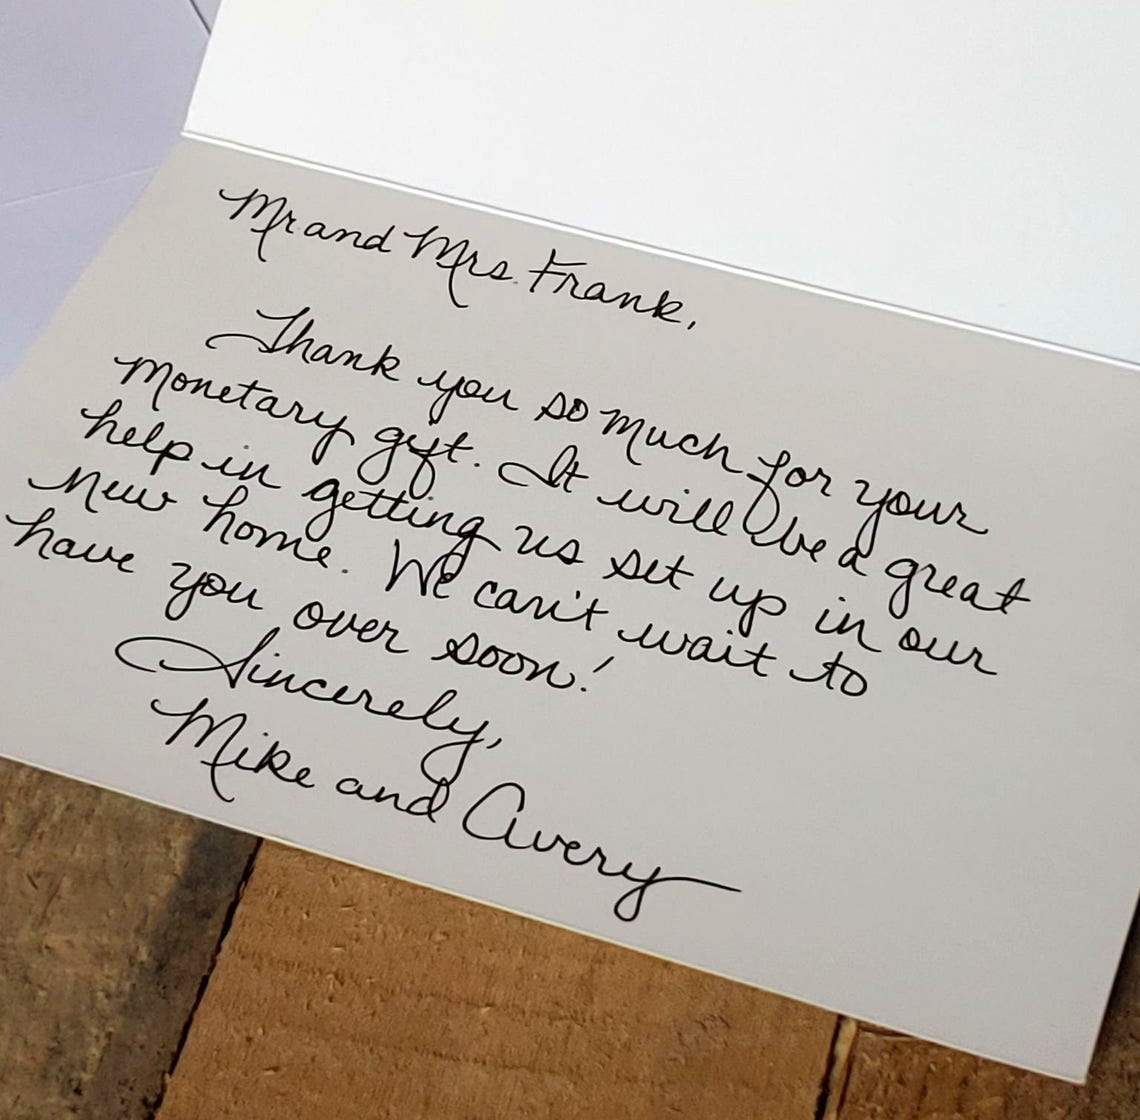 A handwritten card, opened to the message inside.